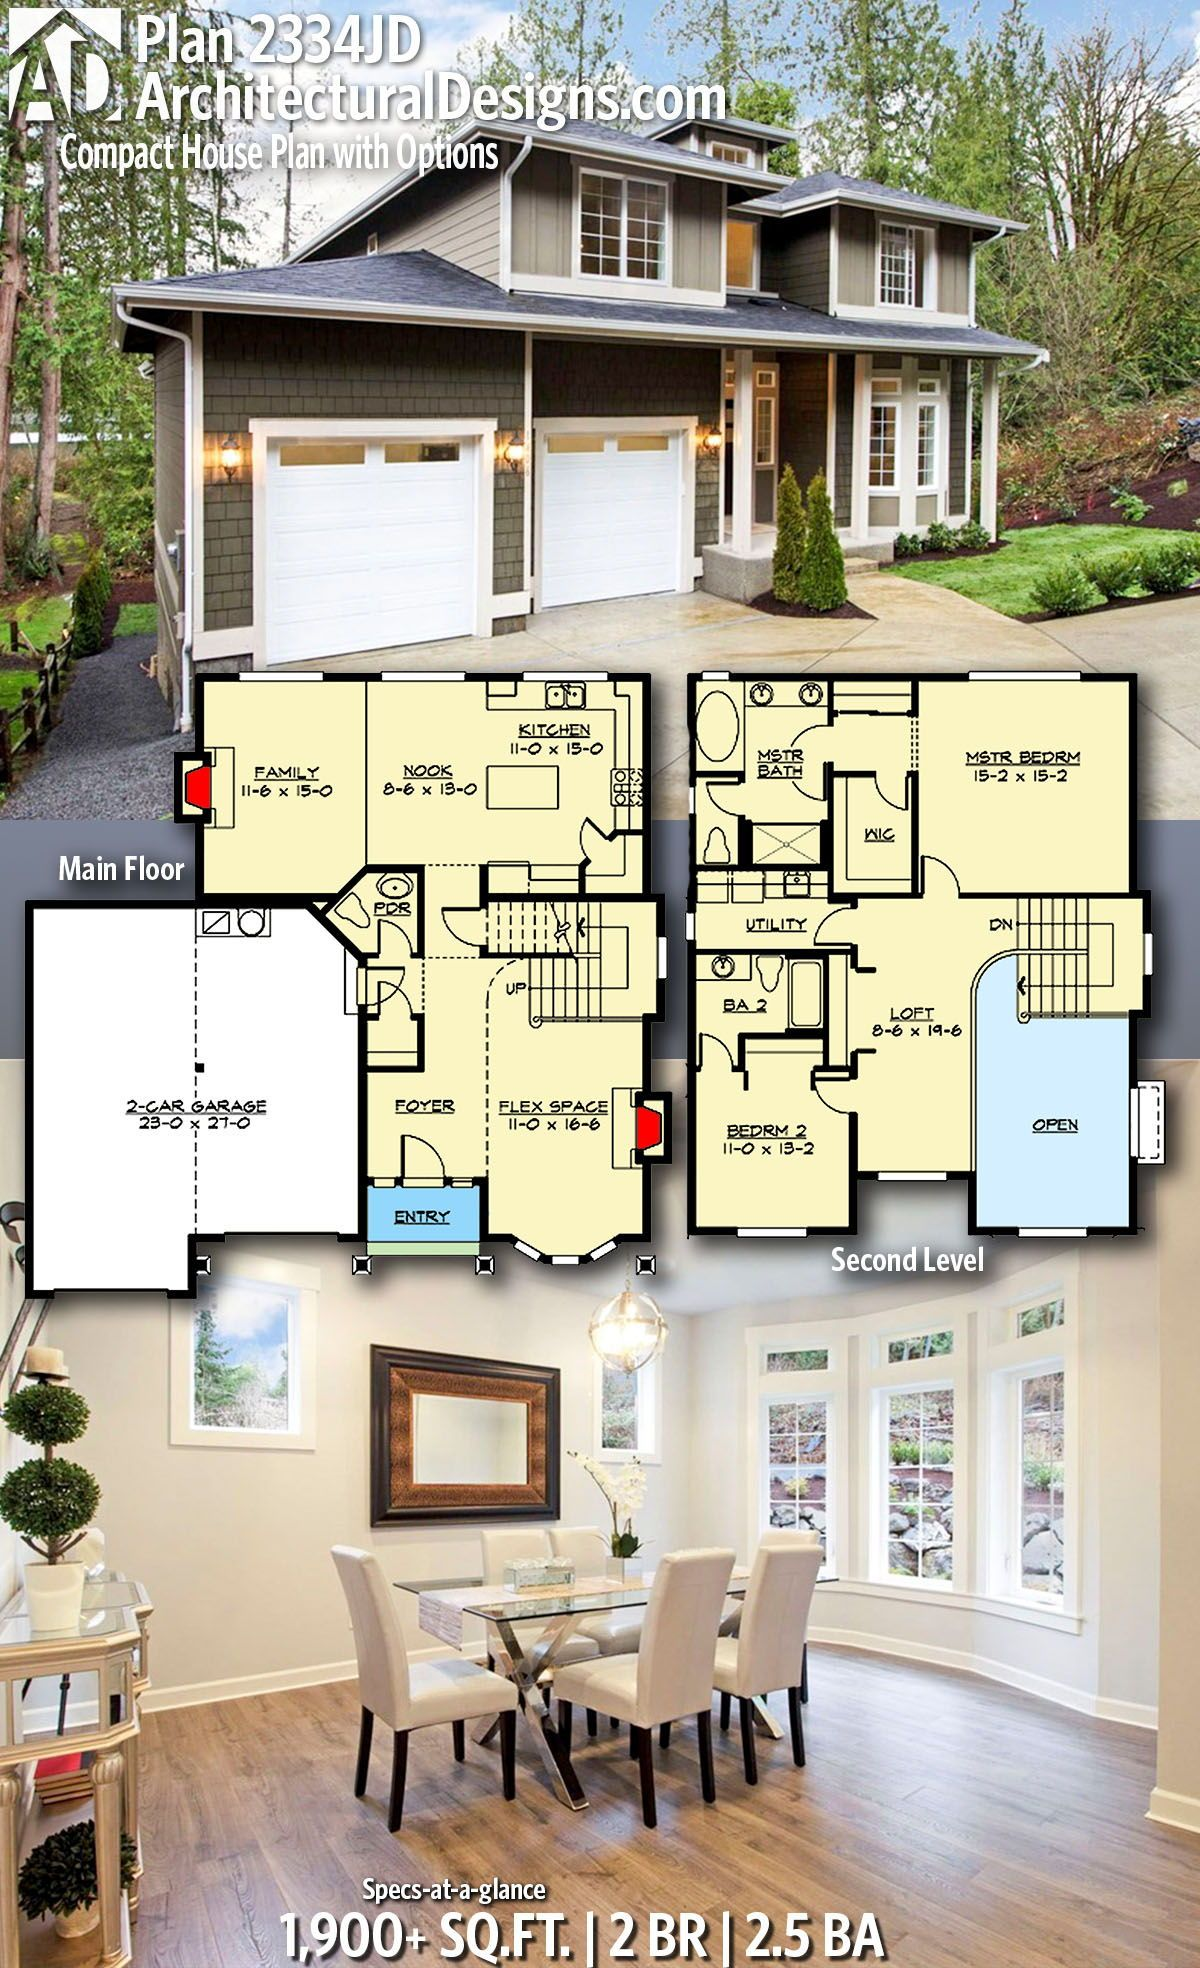 Plan 2334jd Compact House Plan With Options Craftsman House Plans House Plans Country House Plans